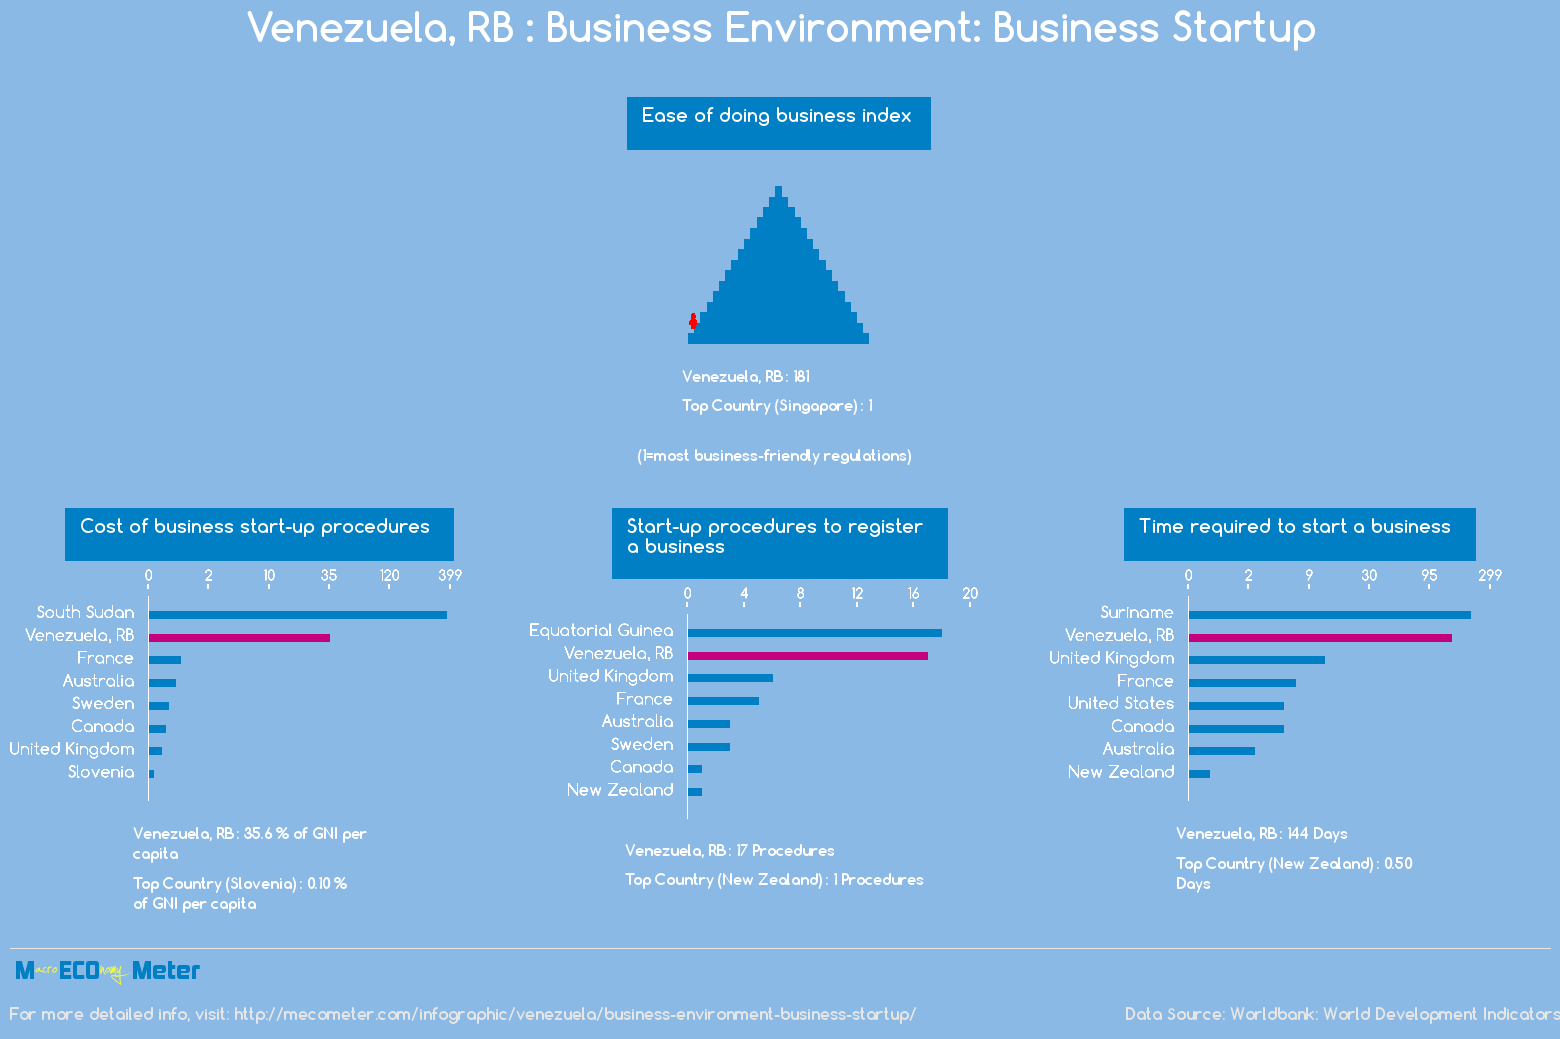 Venezuela, RB : Business Environment: Business Startup